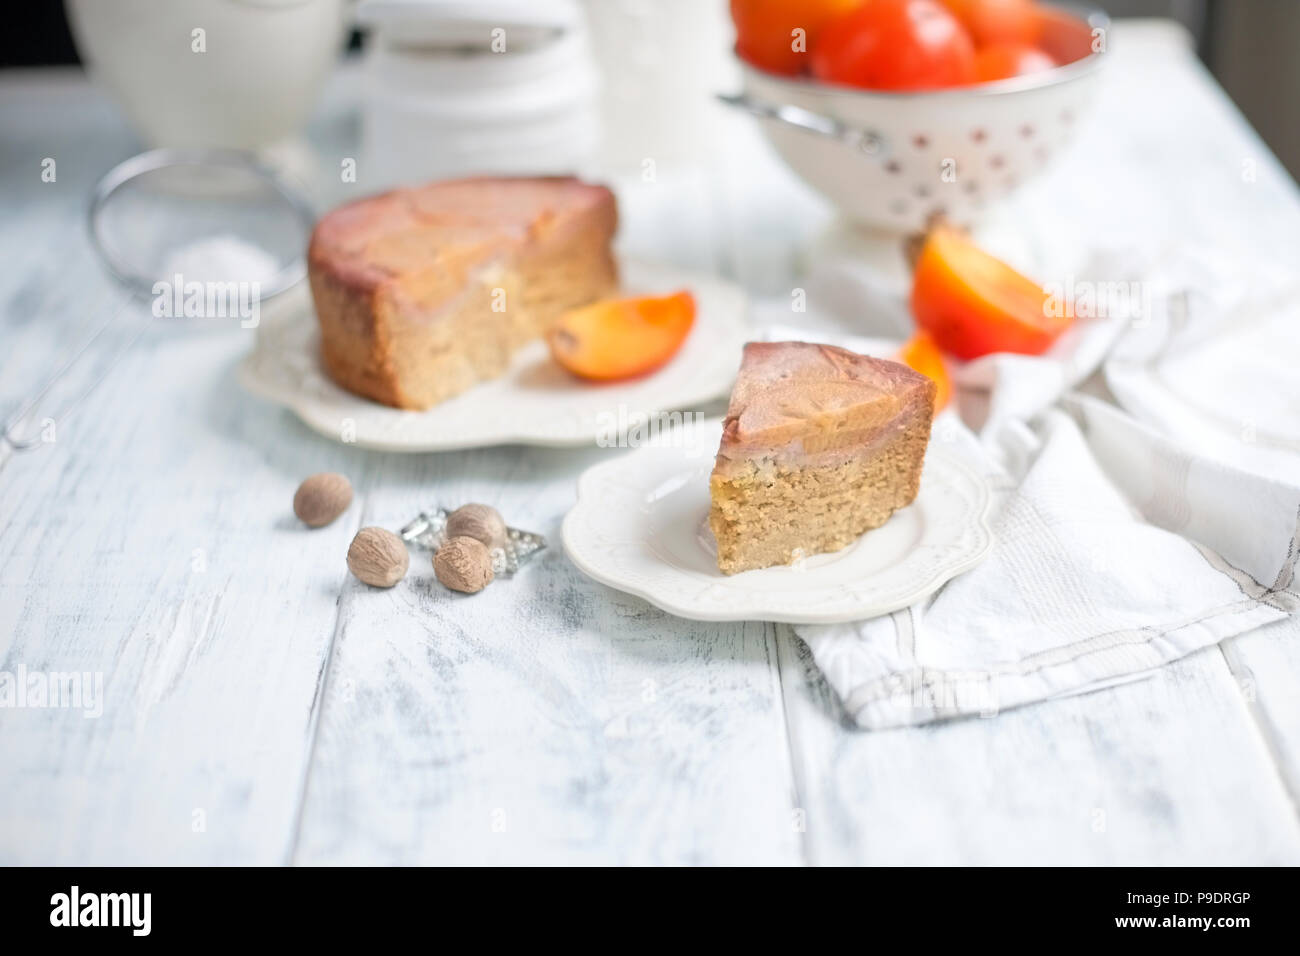 Homemade sweet pie with persimmon. Eastern sweets. Baking for breakfast. White background, free space for text or advertising - Stock Image